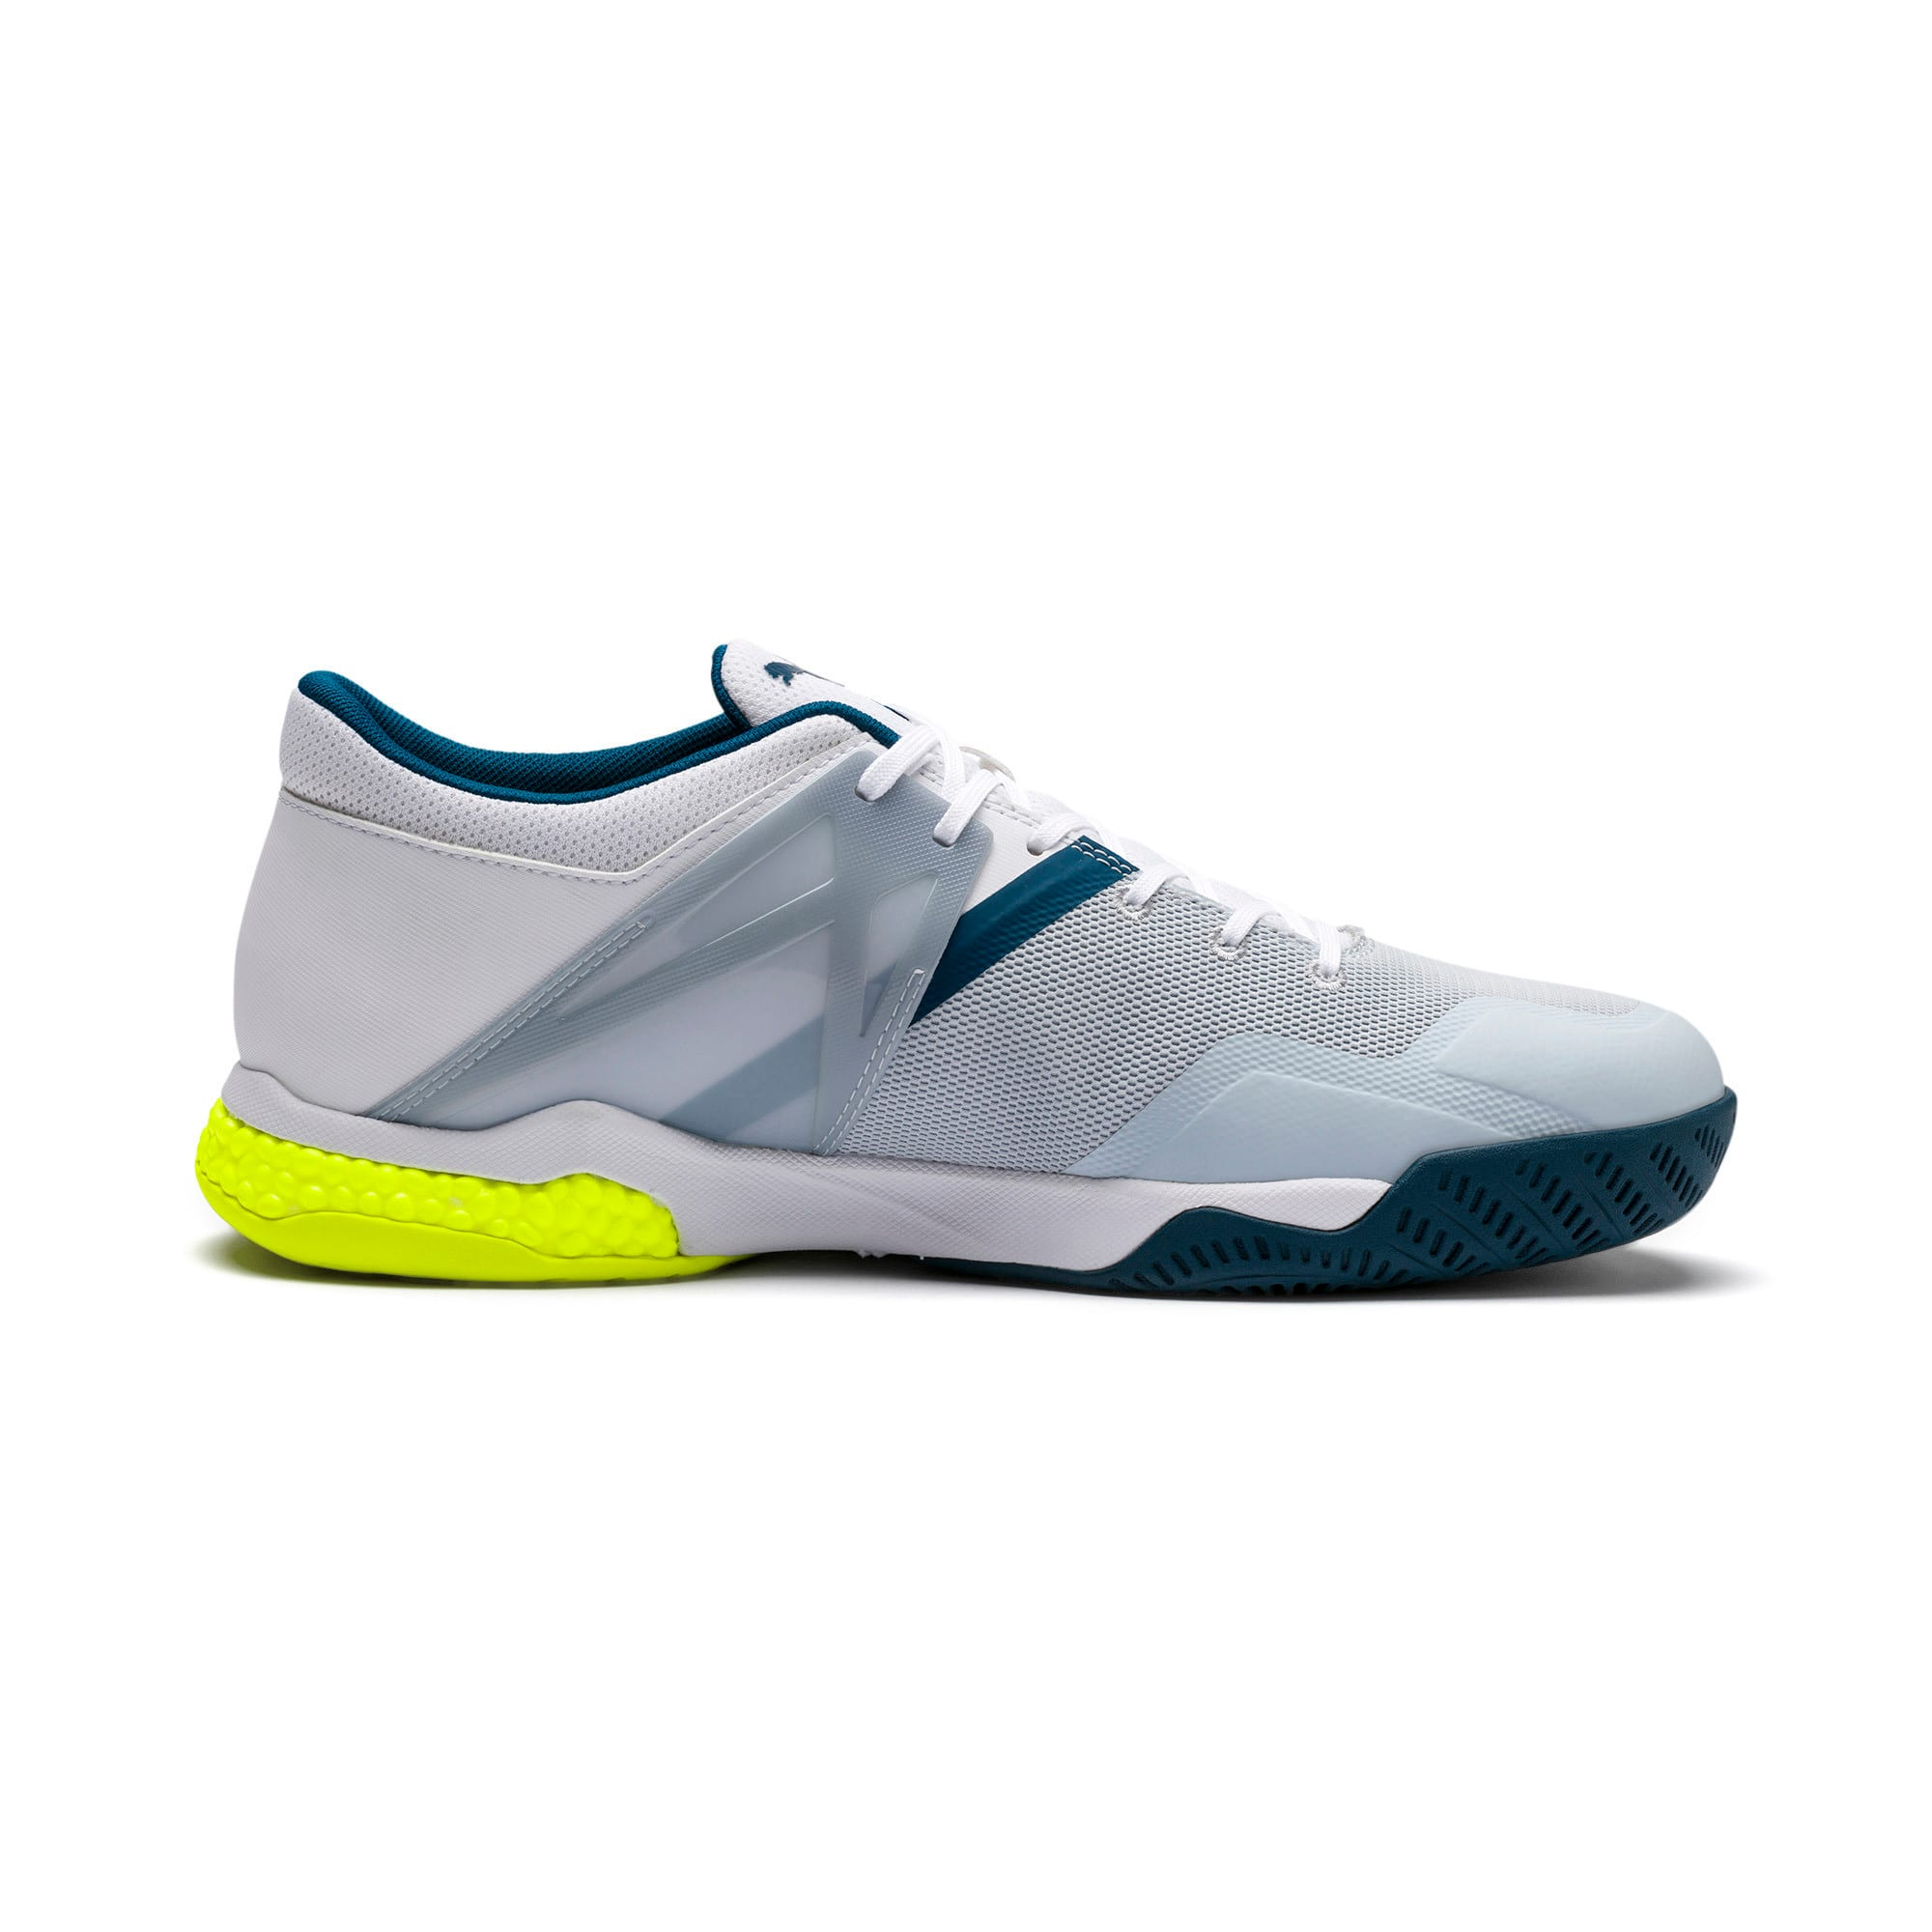 Explode XT Hybrid 2 Handball Shoes, White-Grey-Yellow-Gibraltar, large-IND